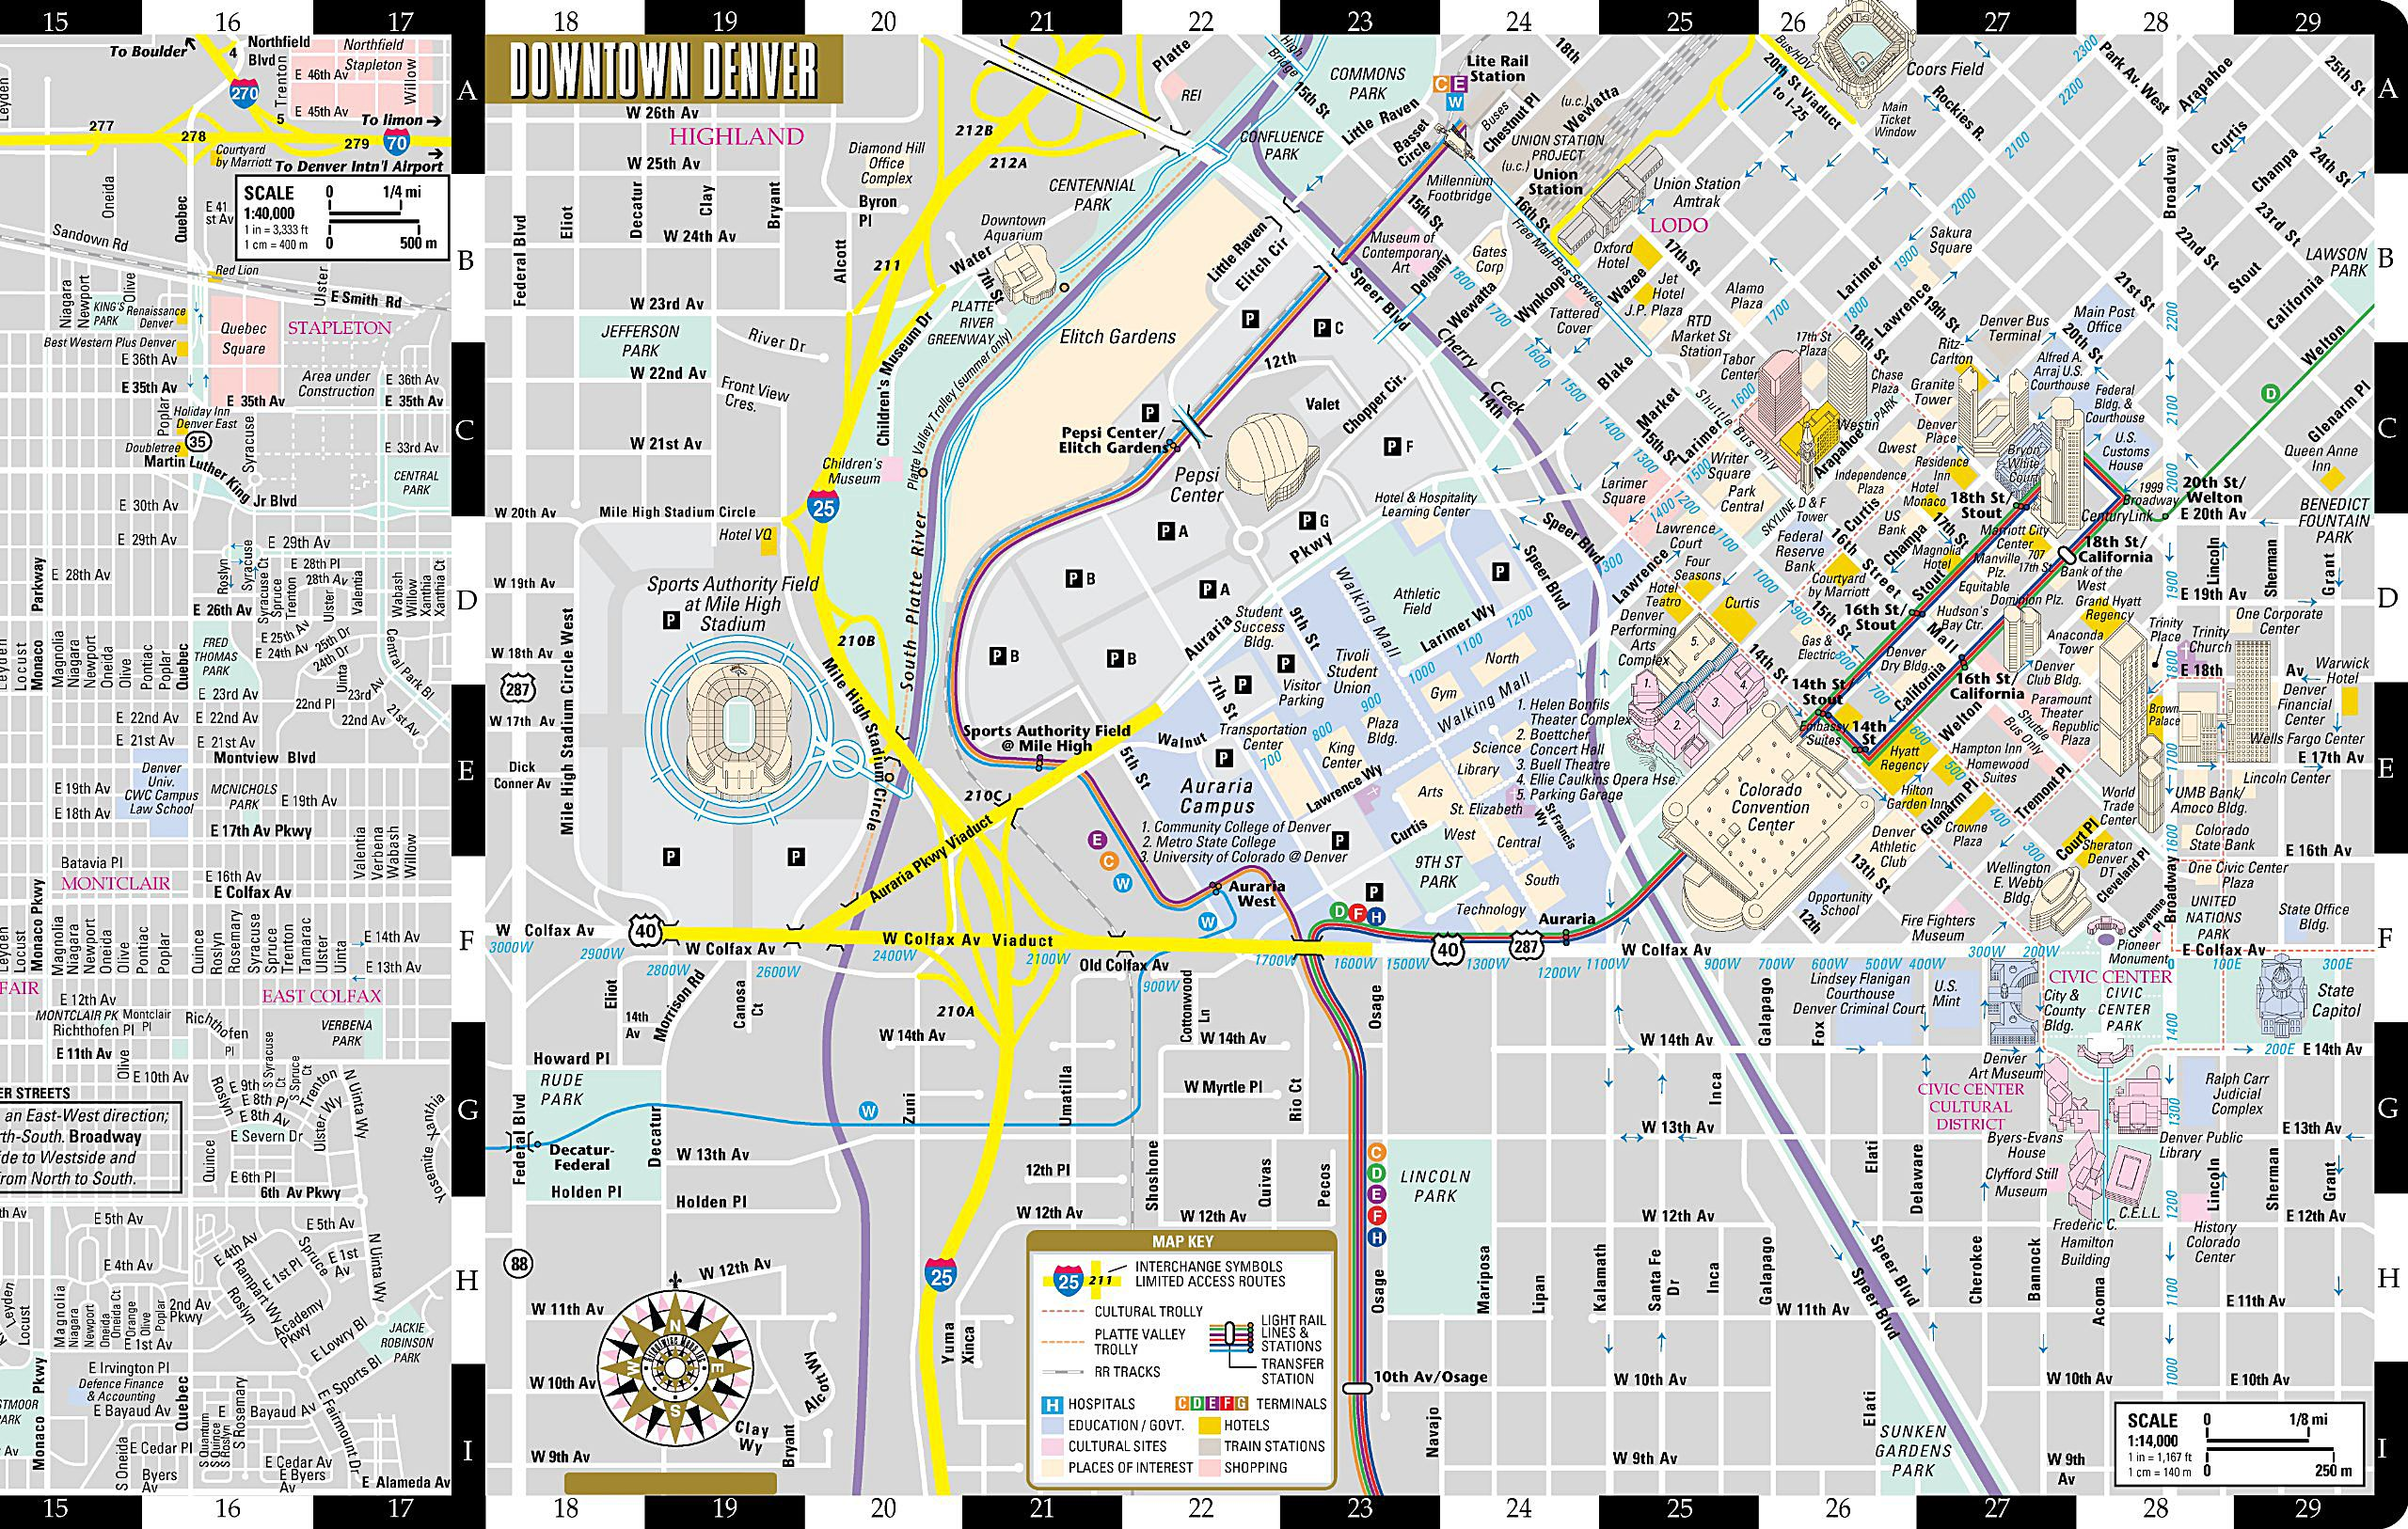 Large Denver Maps for Free Download and Print   High ... on pueblo hotel map, denver downtown attractions, honolulu walking tour map, denver downtown apartments, denver interactive map, linq hotel map, downtown denver city map, brewery downtown denver map, bars downtown denver map, lone tree hotel map, downtown aquarium denver map, downtown honolulu street map, downtown denver street map, clearwater beach hotel map, denver art museum map, denver downtown shopping, restaurant downtown indianapolis indiana map, lower downtown denver map, restaurants downtown denver map, downtown denver parking lot map,